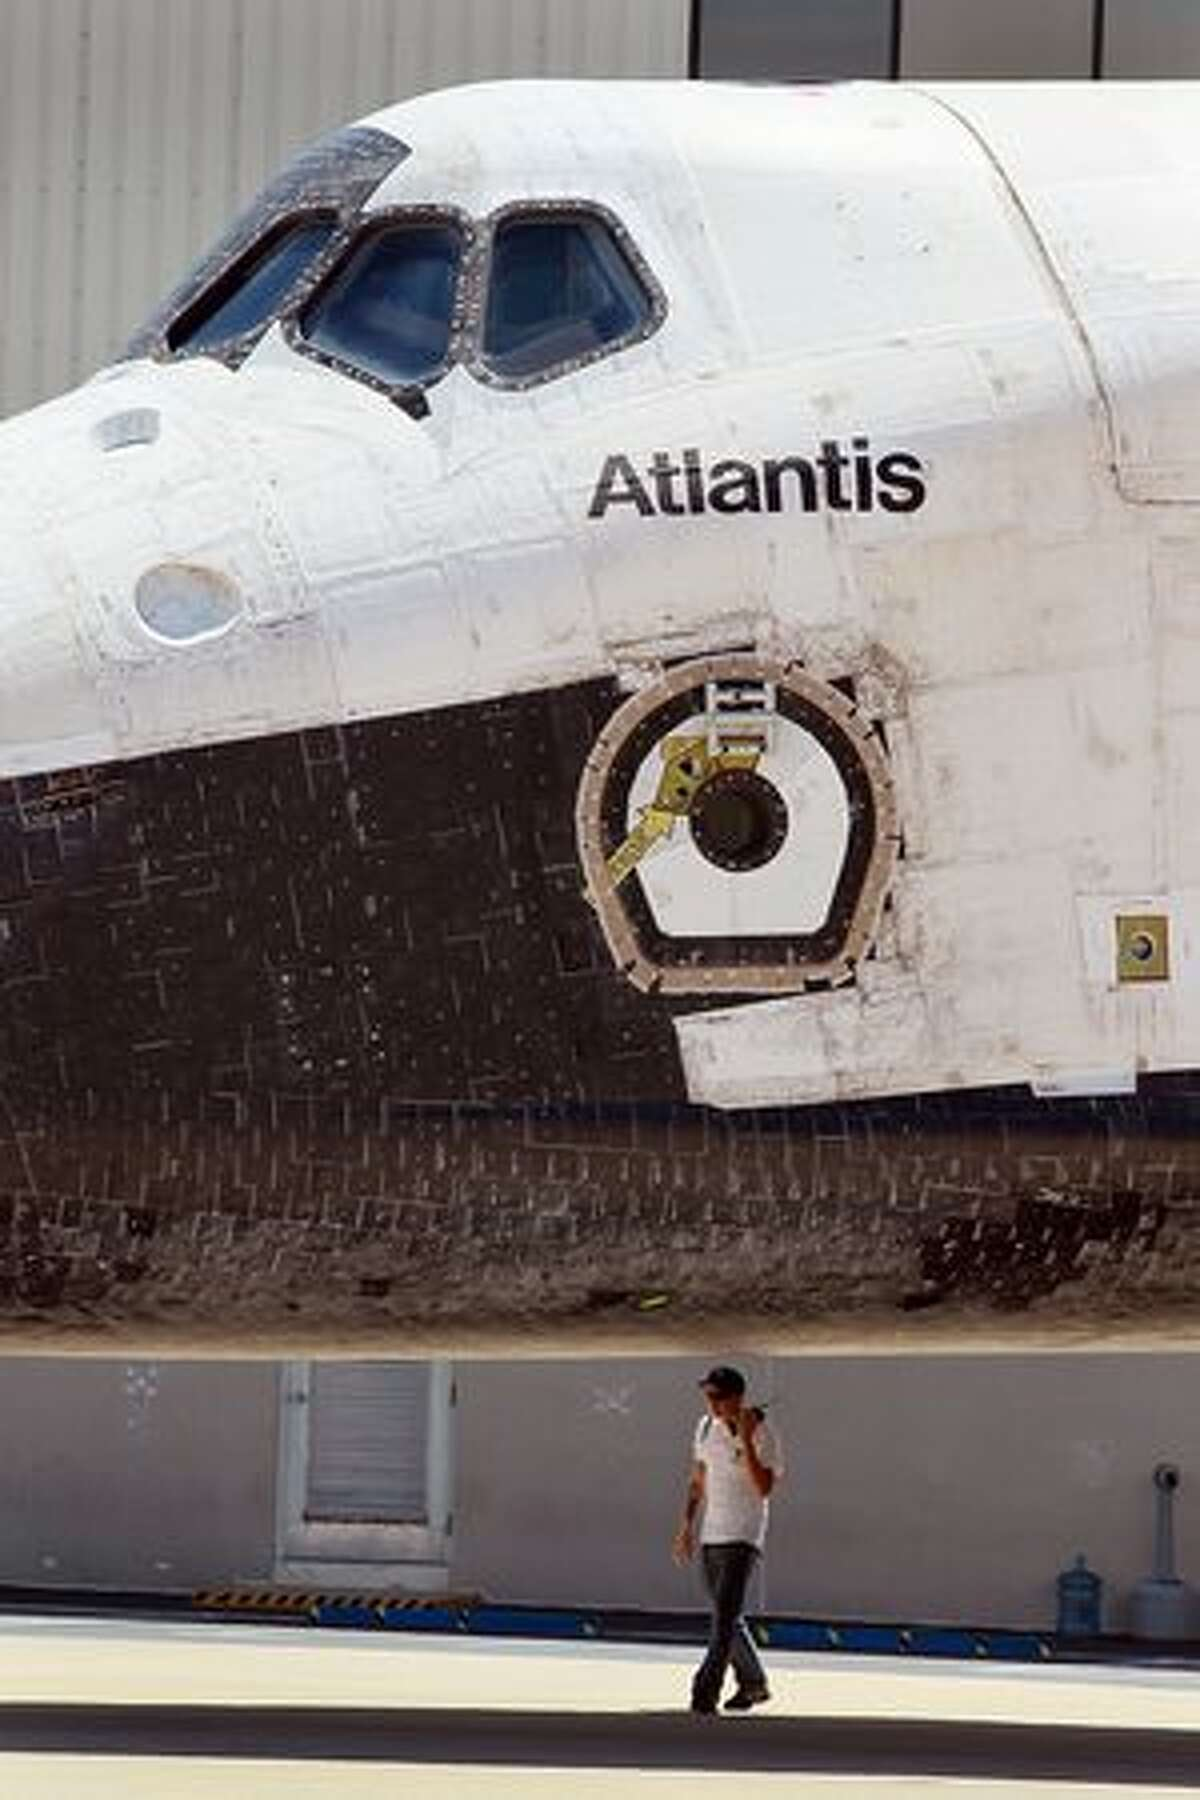 The Space Shuttle Atlantis is seen parked in front of the Orbiter Processing Facility after it returned to Kennedy Space Center in Cape Canaveral, Florida.